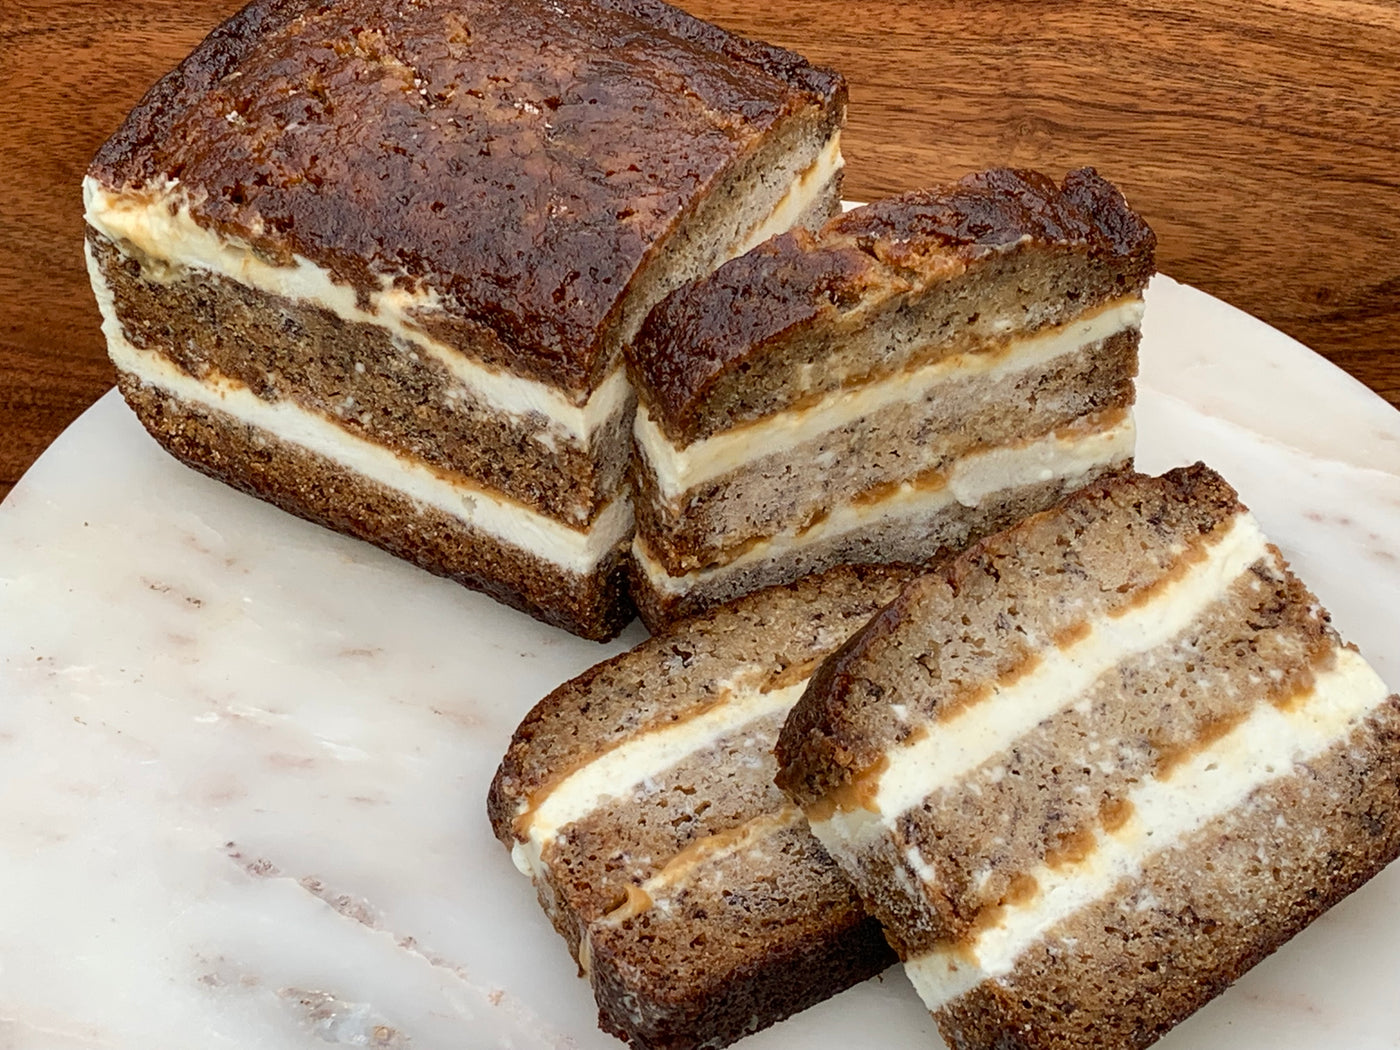 Banana Bread Bourbon Caramel Ice Cream Cake